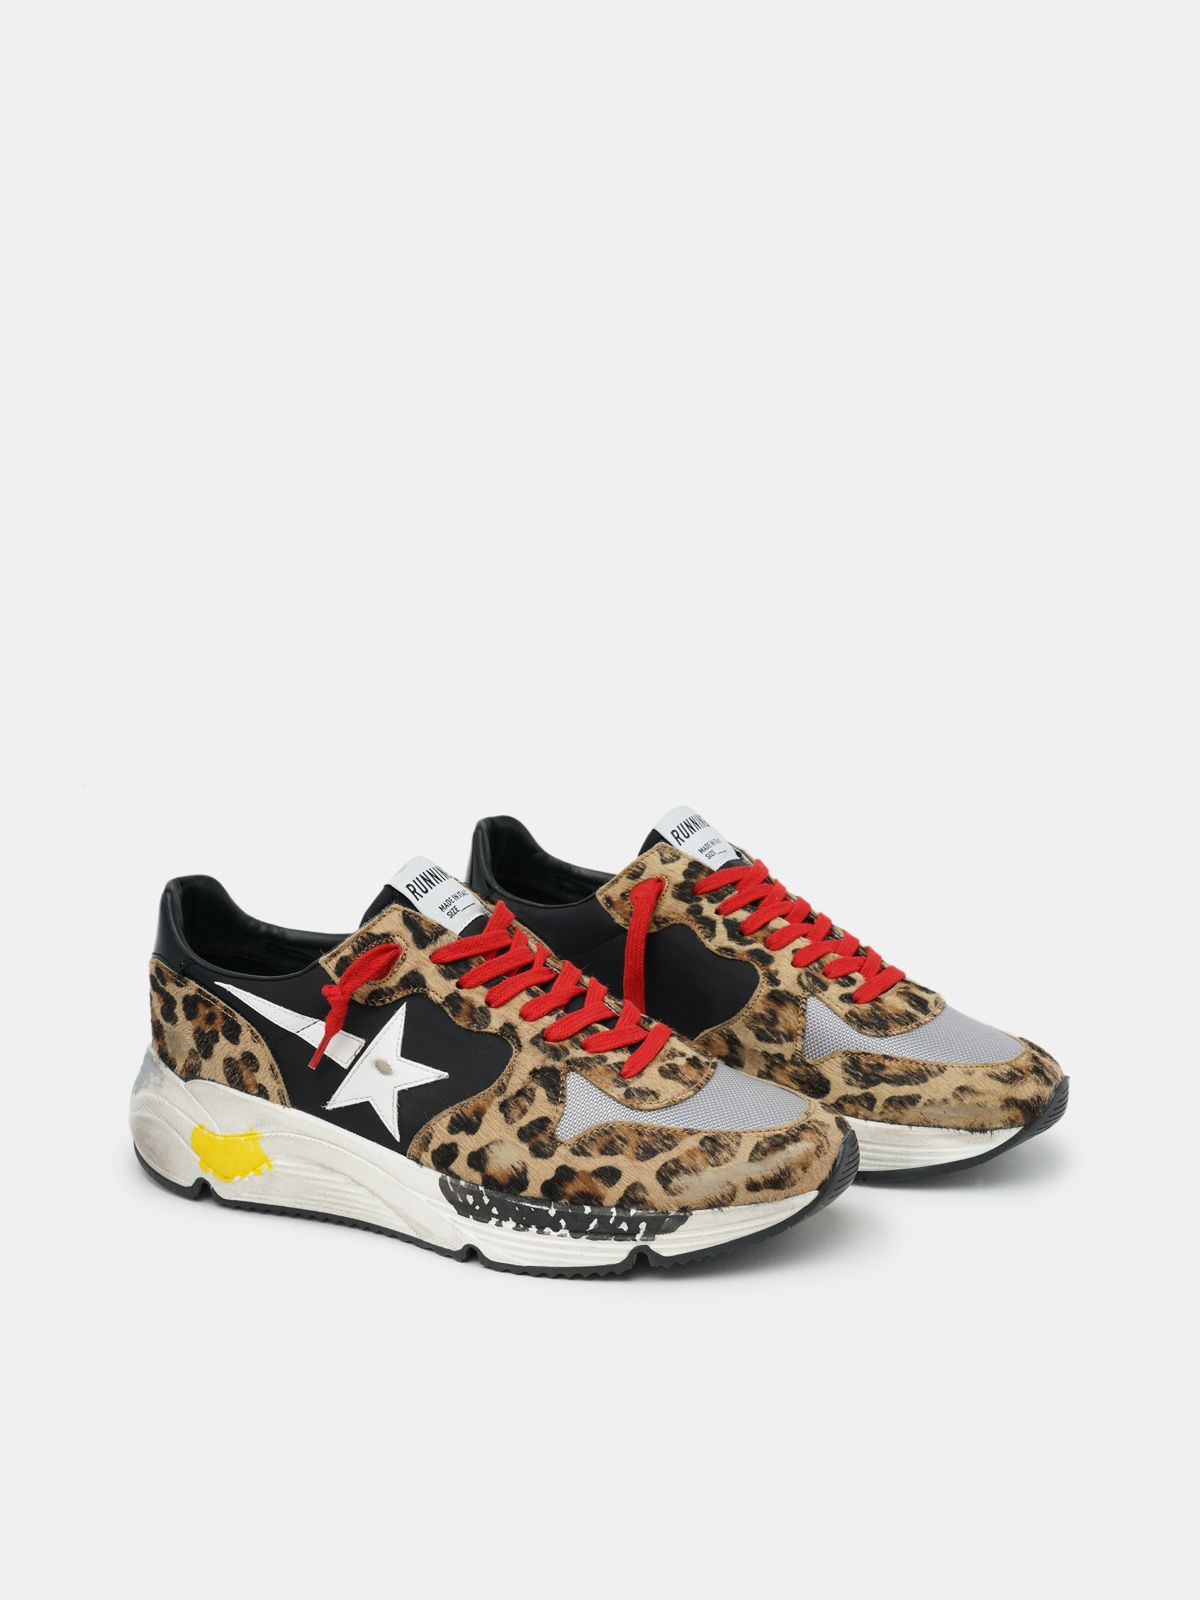 Golden Goose - Running Sole sneakers in leopard-print pony skin with red laces in